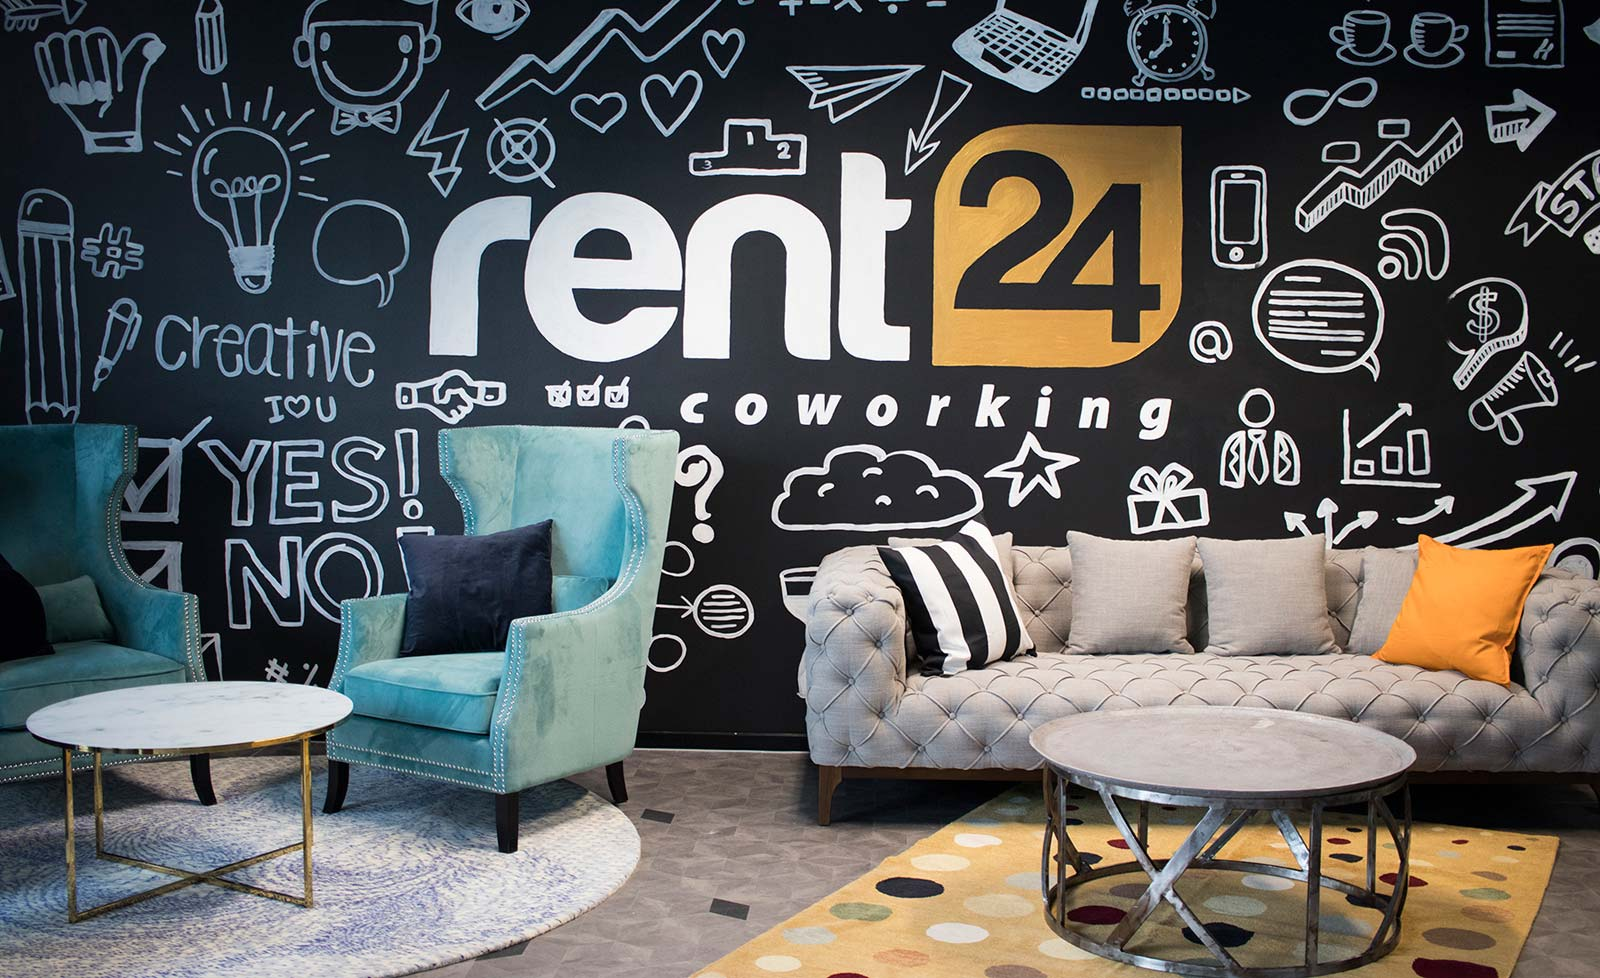 Image of Rent24 Coworking in Berlin